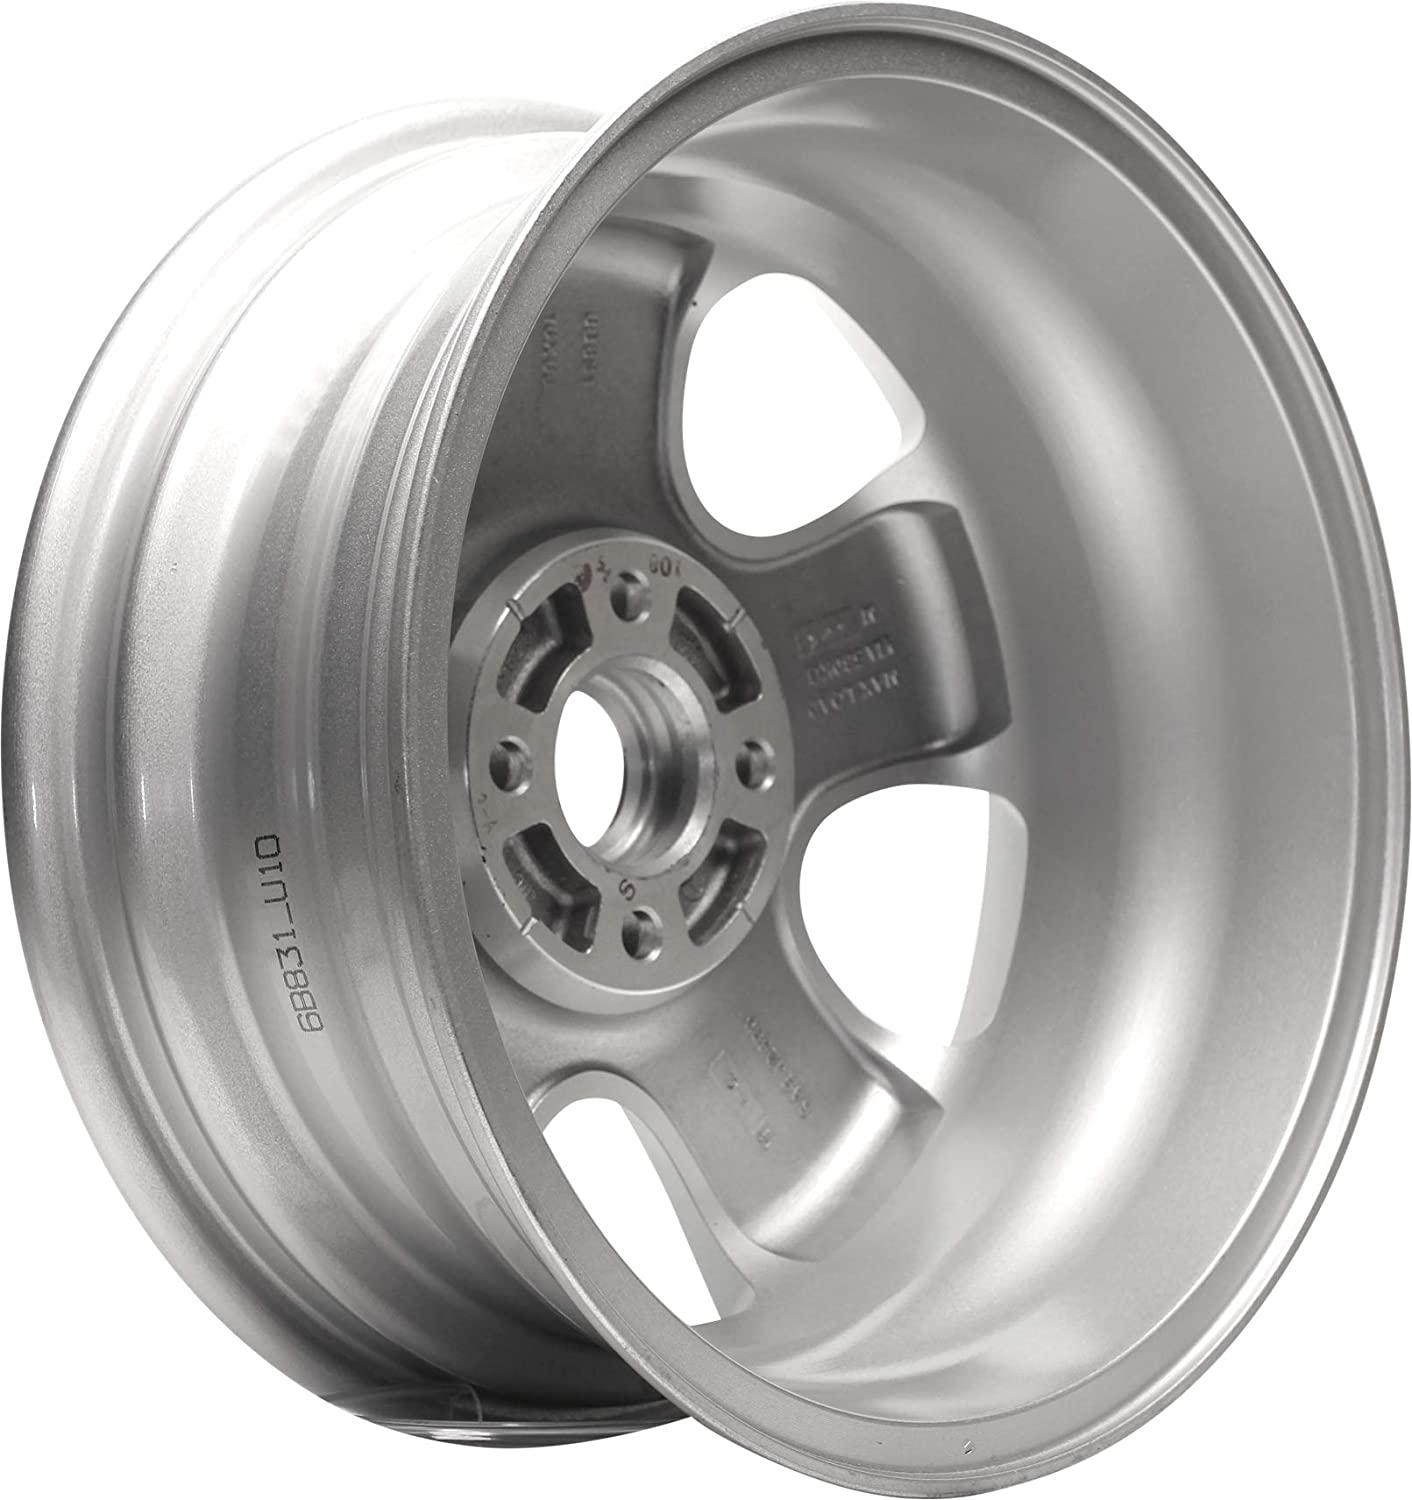 Partsynergy Replacement For New Replica Aluminum Alloy Wheel Rim 16 Inch Fits 2005-2007 Ford Focus 4-108mm 5 Spokes